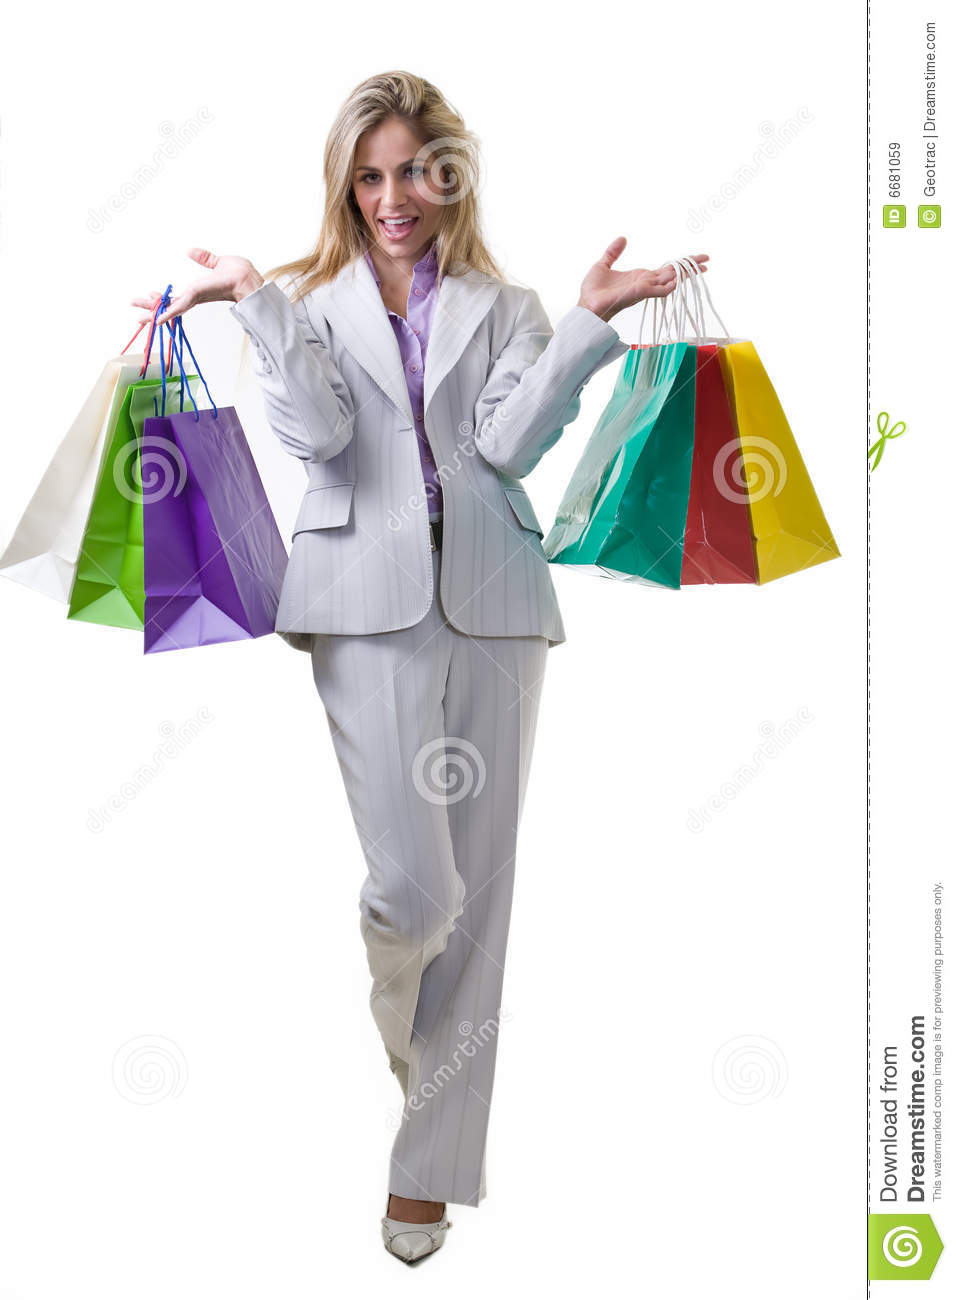 professional shopper royalty free stock images image On how to be a professional shopper